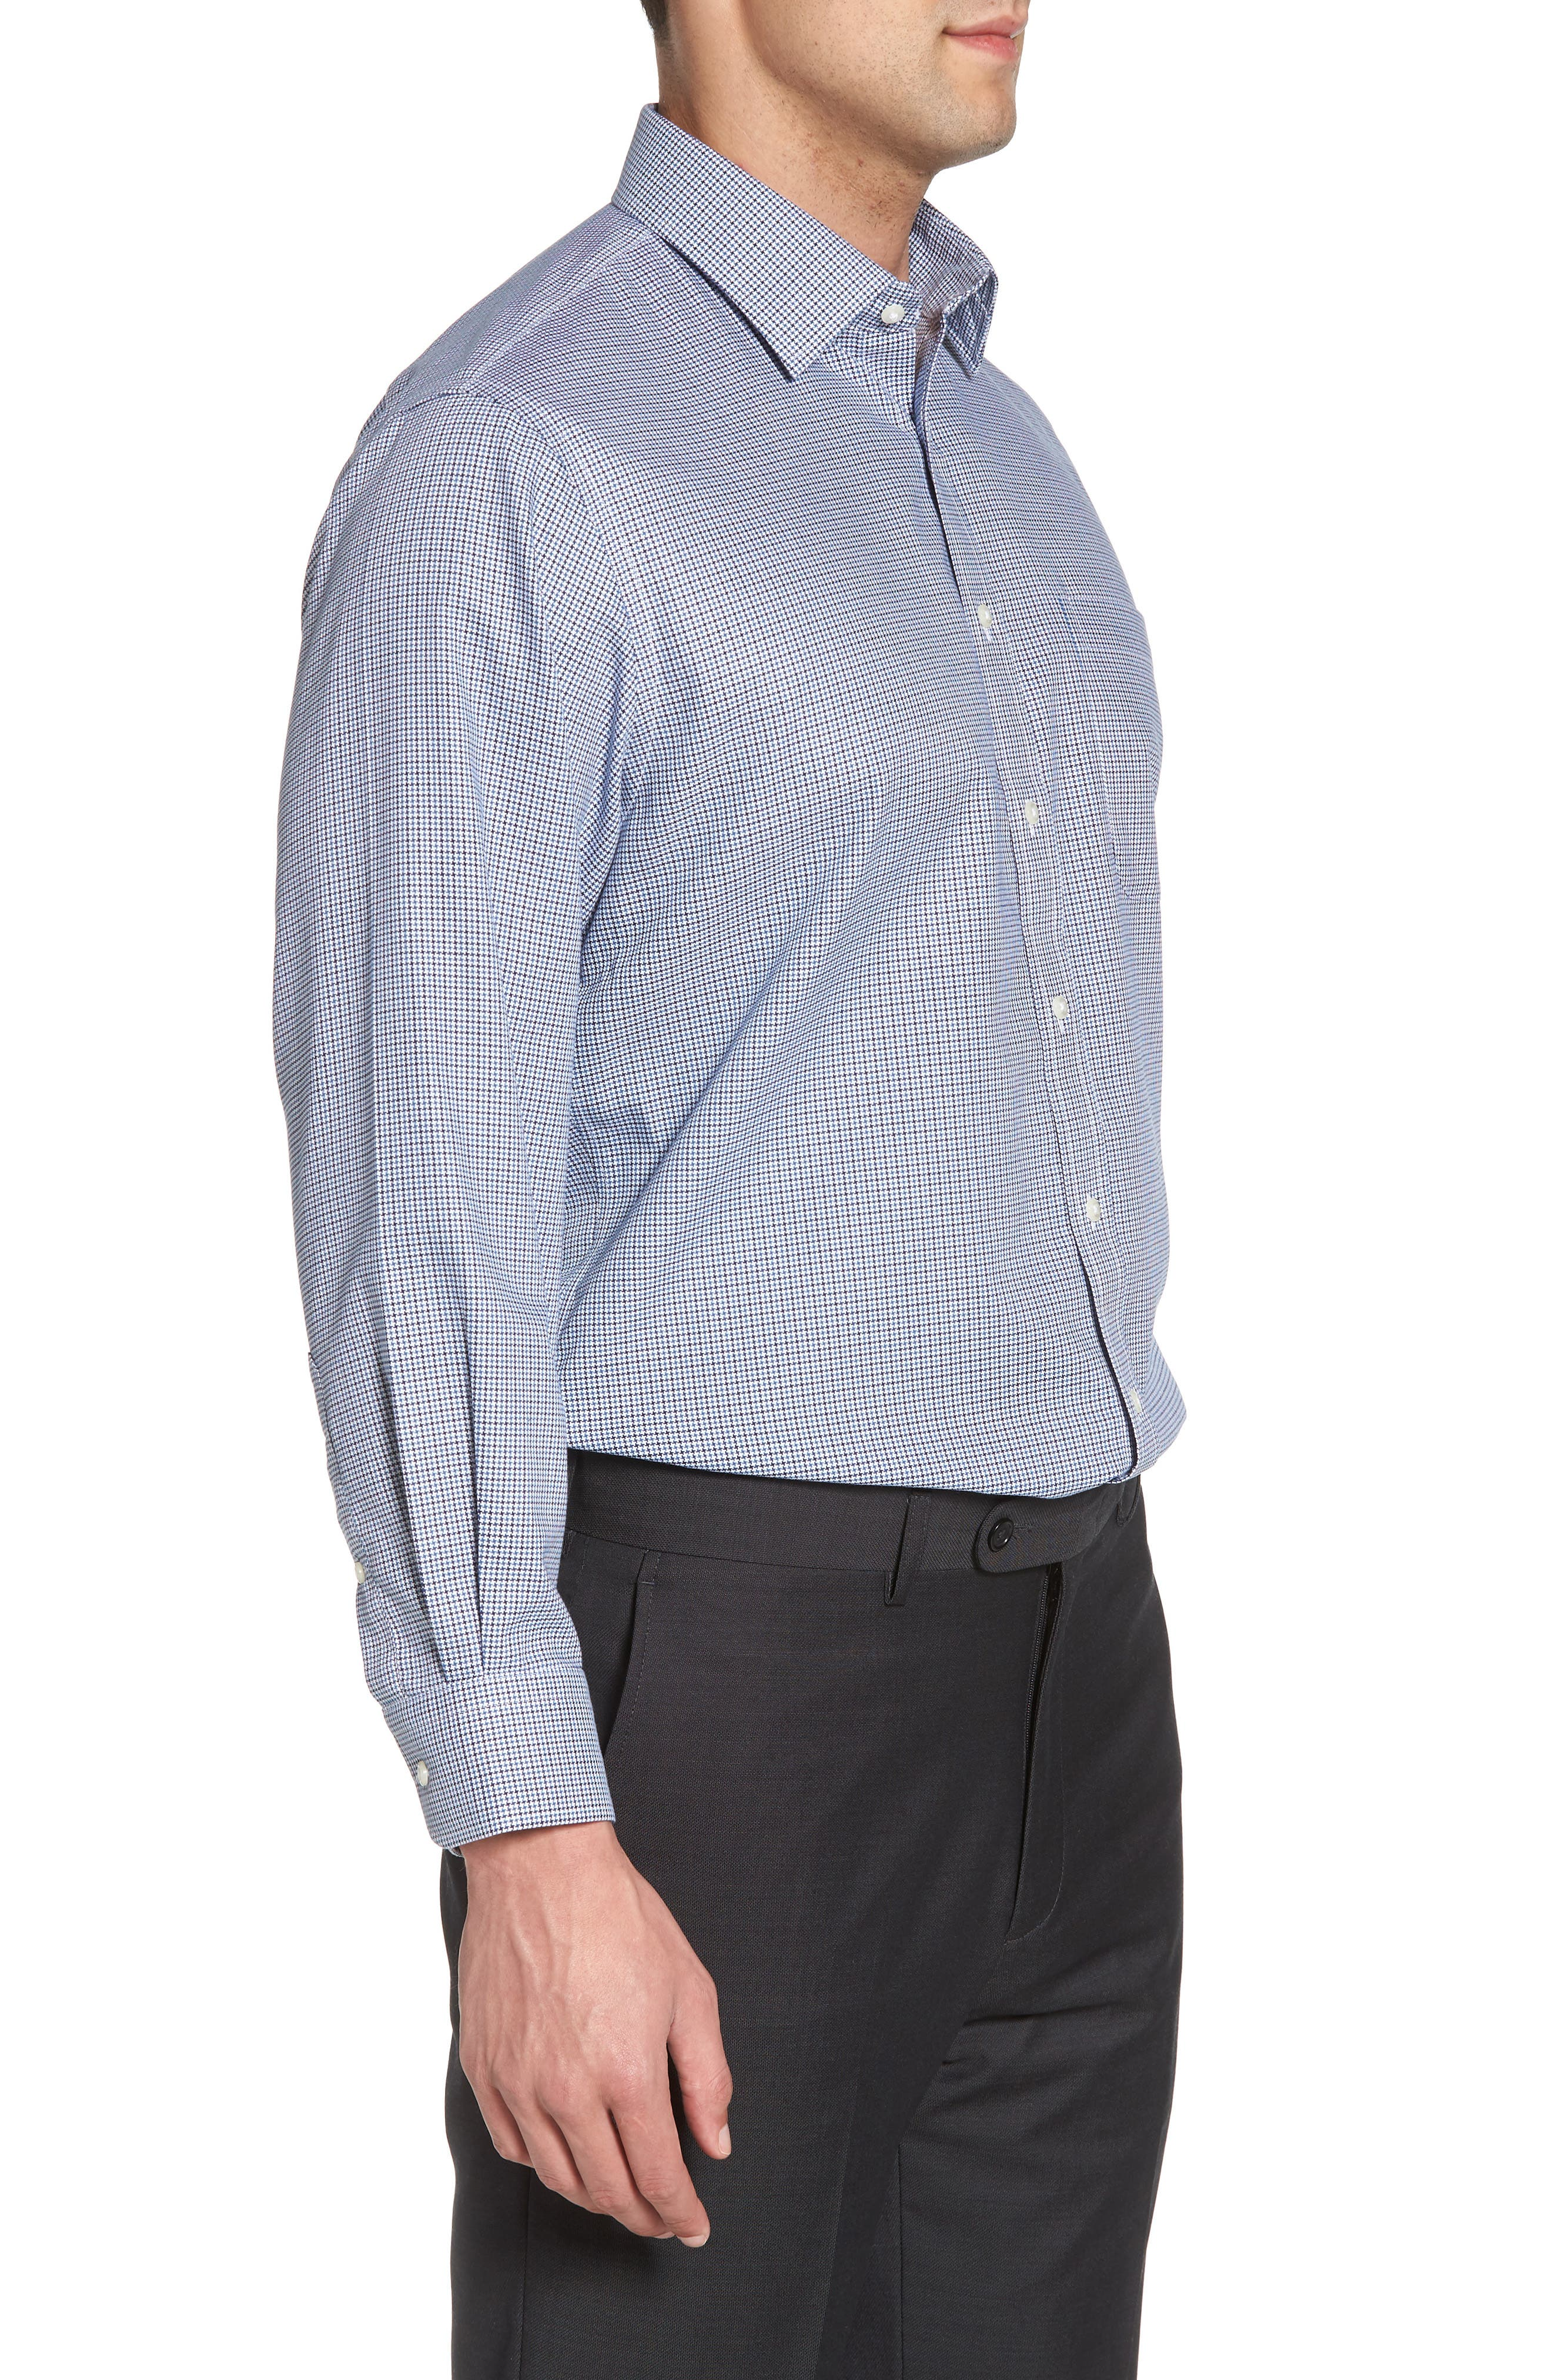 Smartcare<sup>™</sup> Traditional Fit Houndstooth Dress Shirt,                             Alternate thumbnail 4, color,                             410